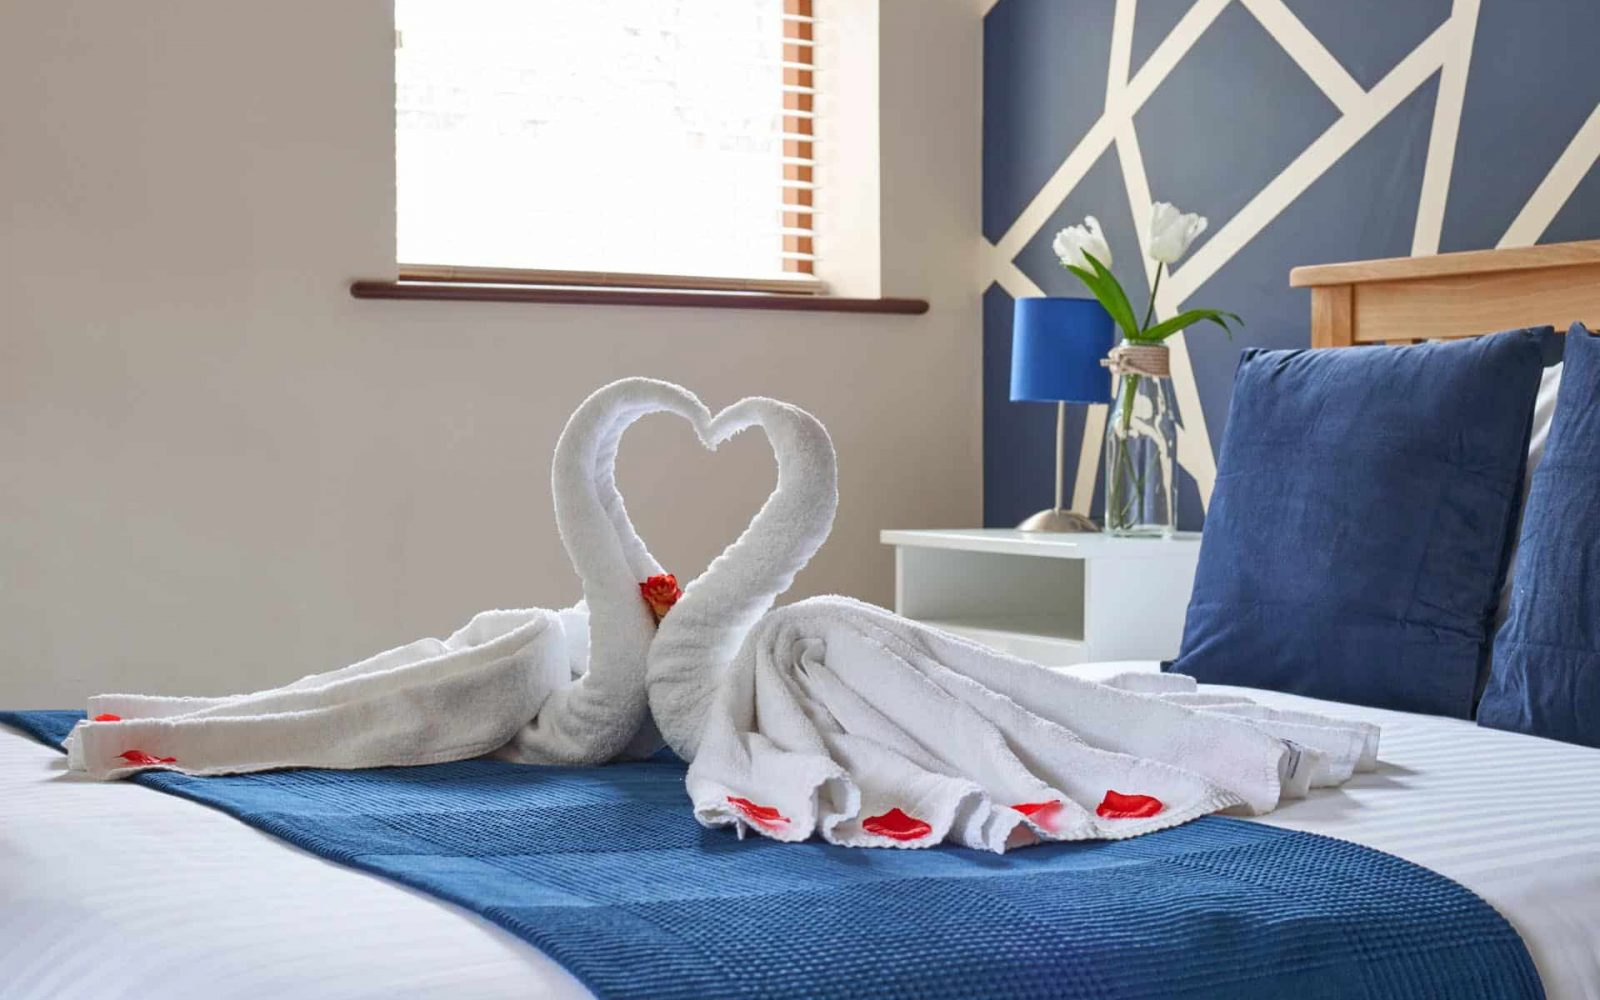 Two towels folded to make a swans and a heart shape on the bed